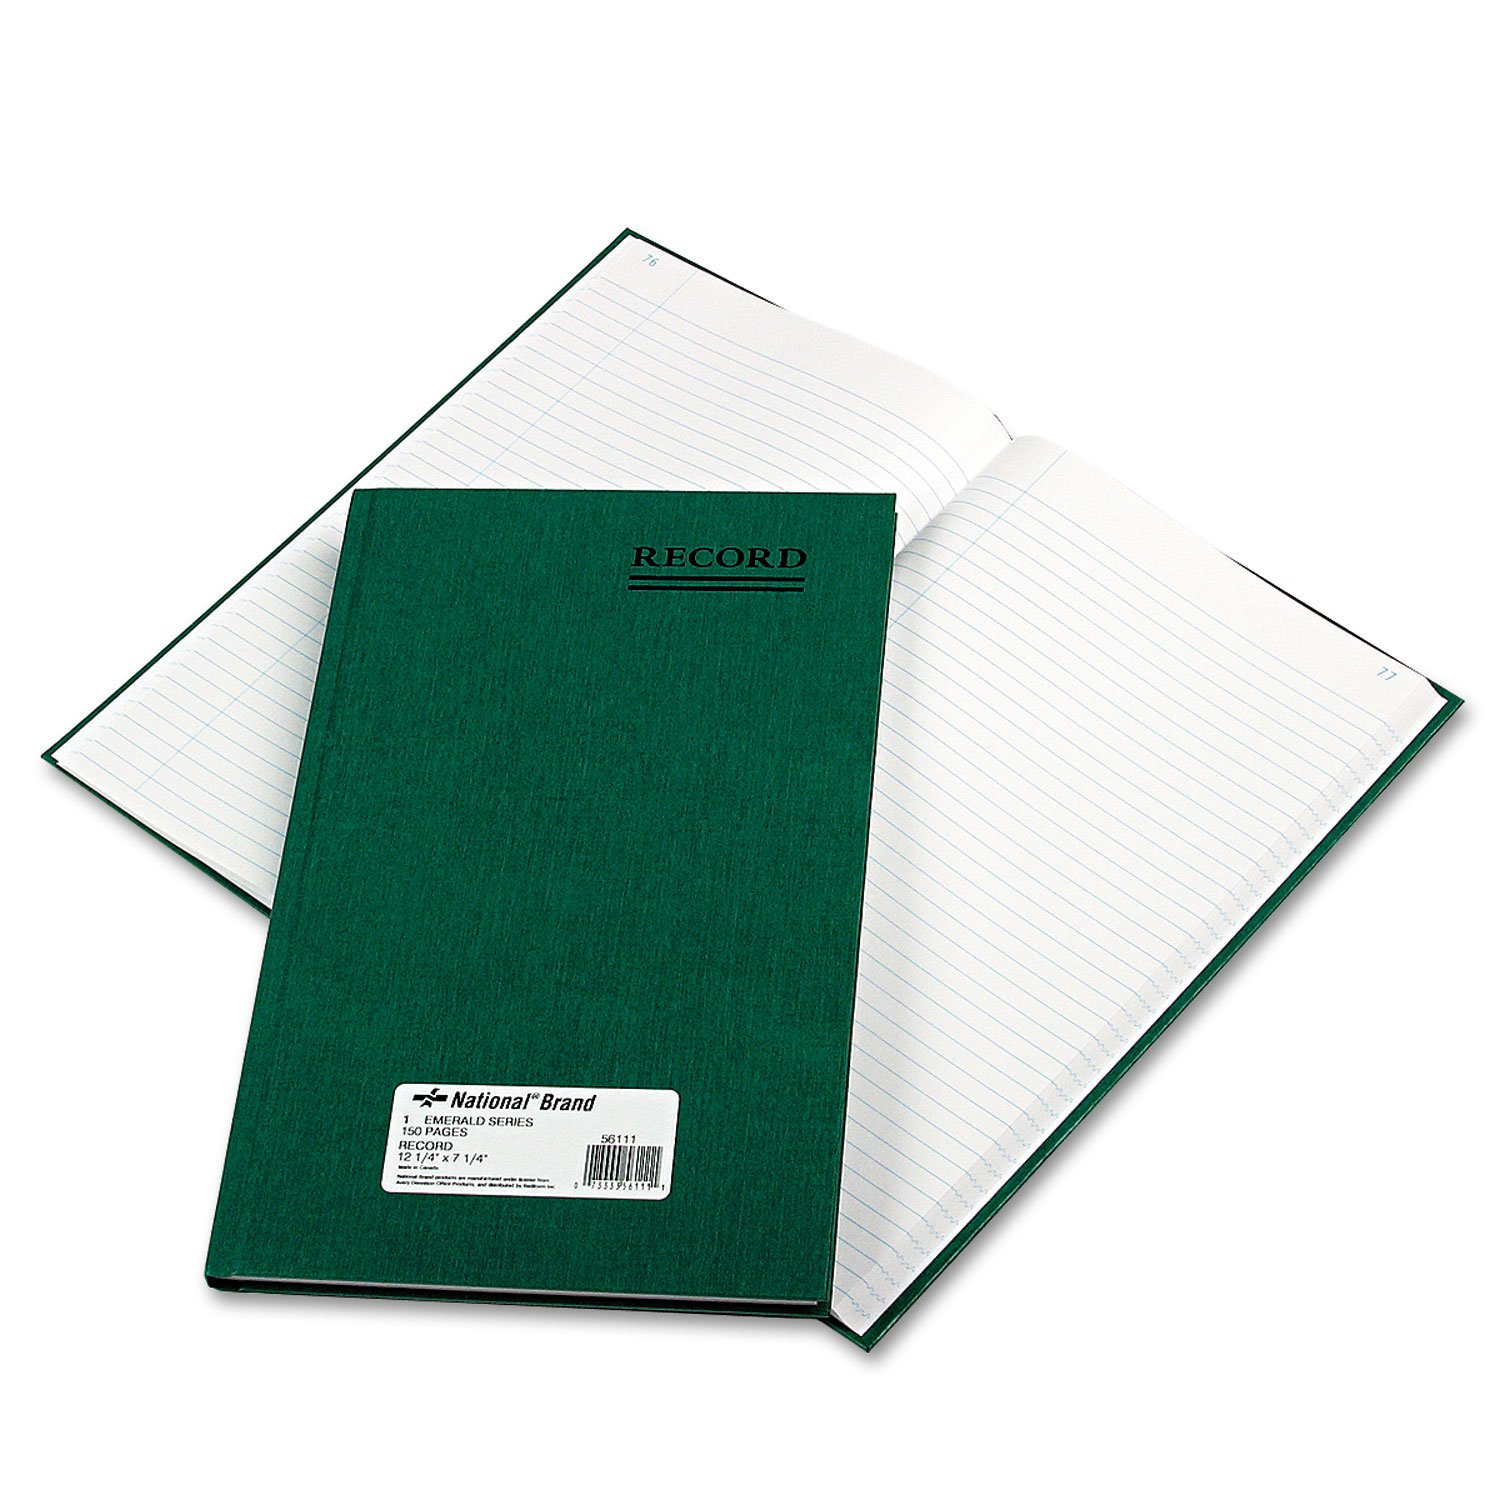 National 56111 Emerald Series Account Book Green Cover 150 Pages 12 1/4 x 7 1/4